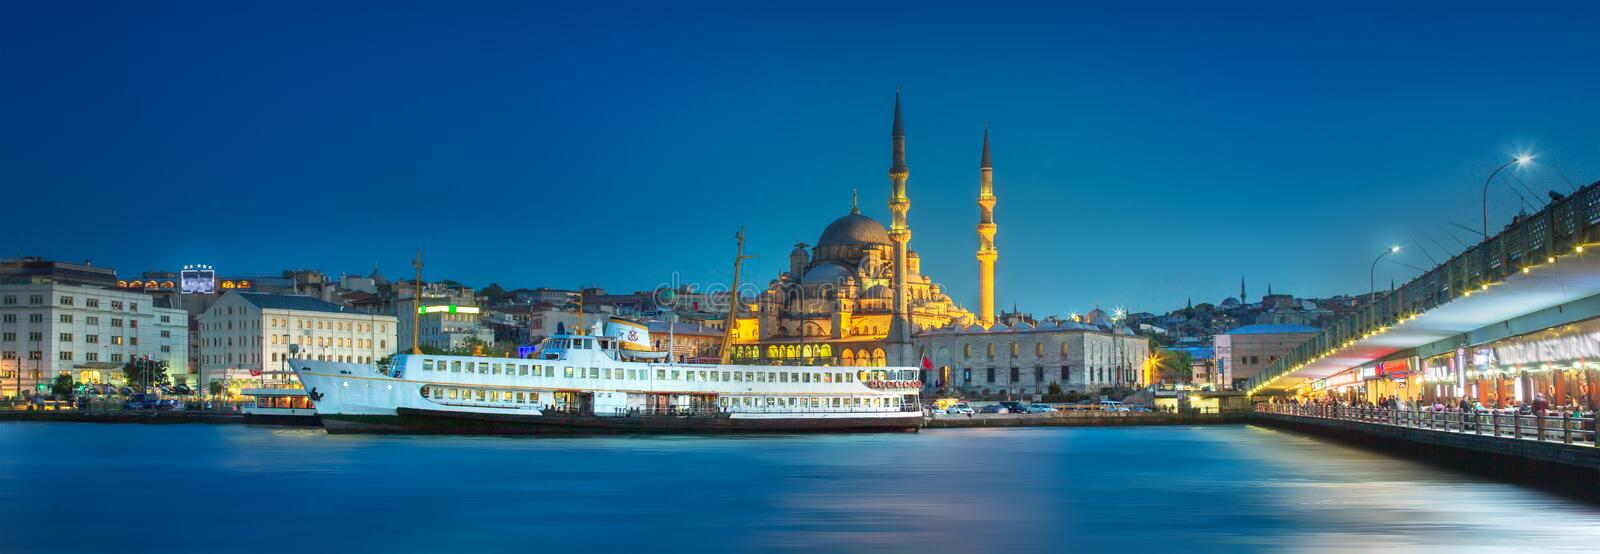 View of public ferry and old district of Istanbul. View of pier, public ferry and old district of Istanbul with Mosque on skyline, Turkey. Clipping path of sky royalty free stock photo